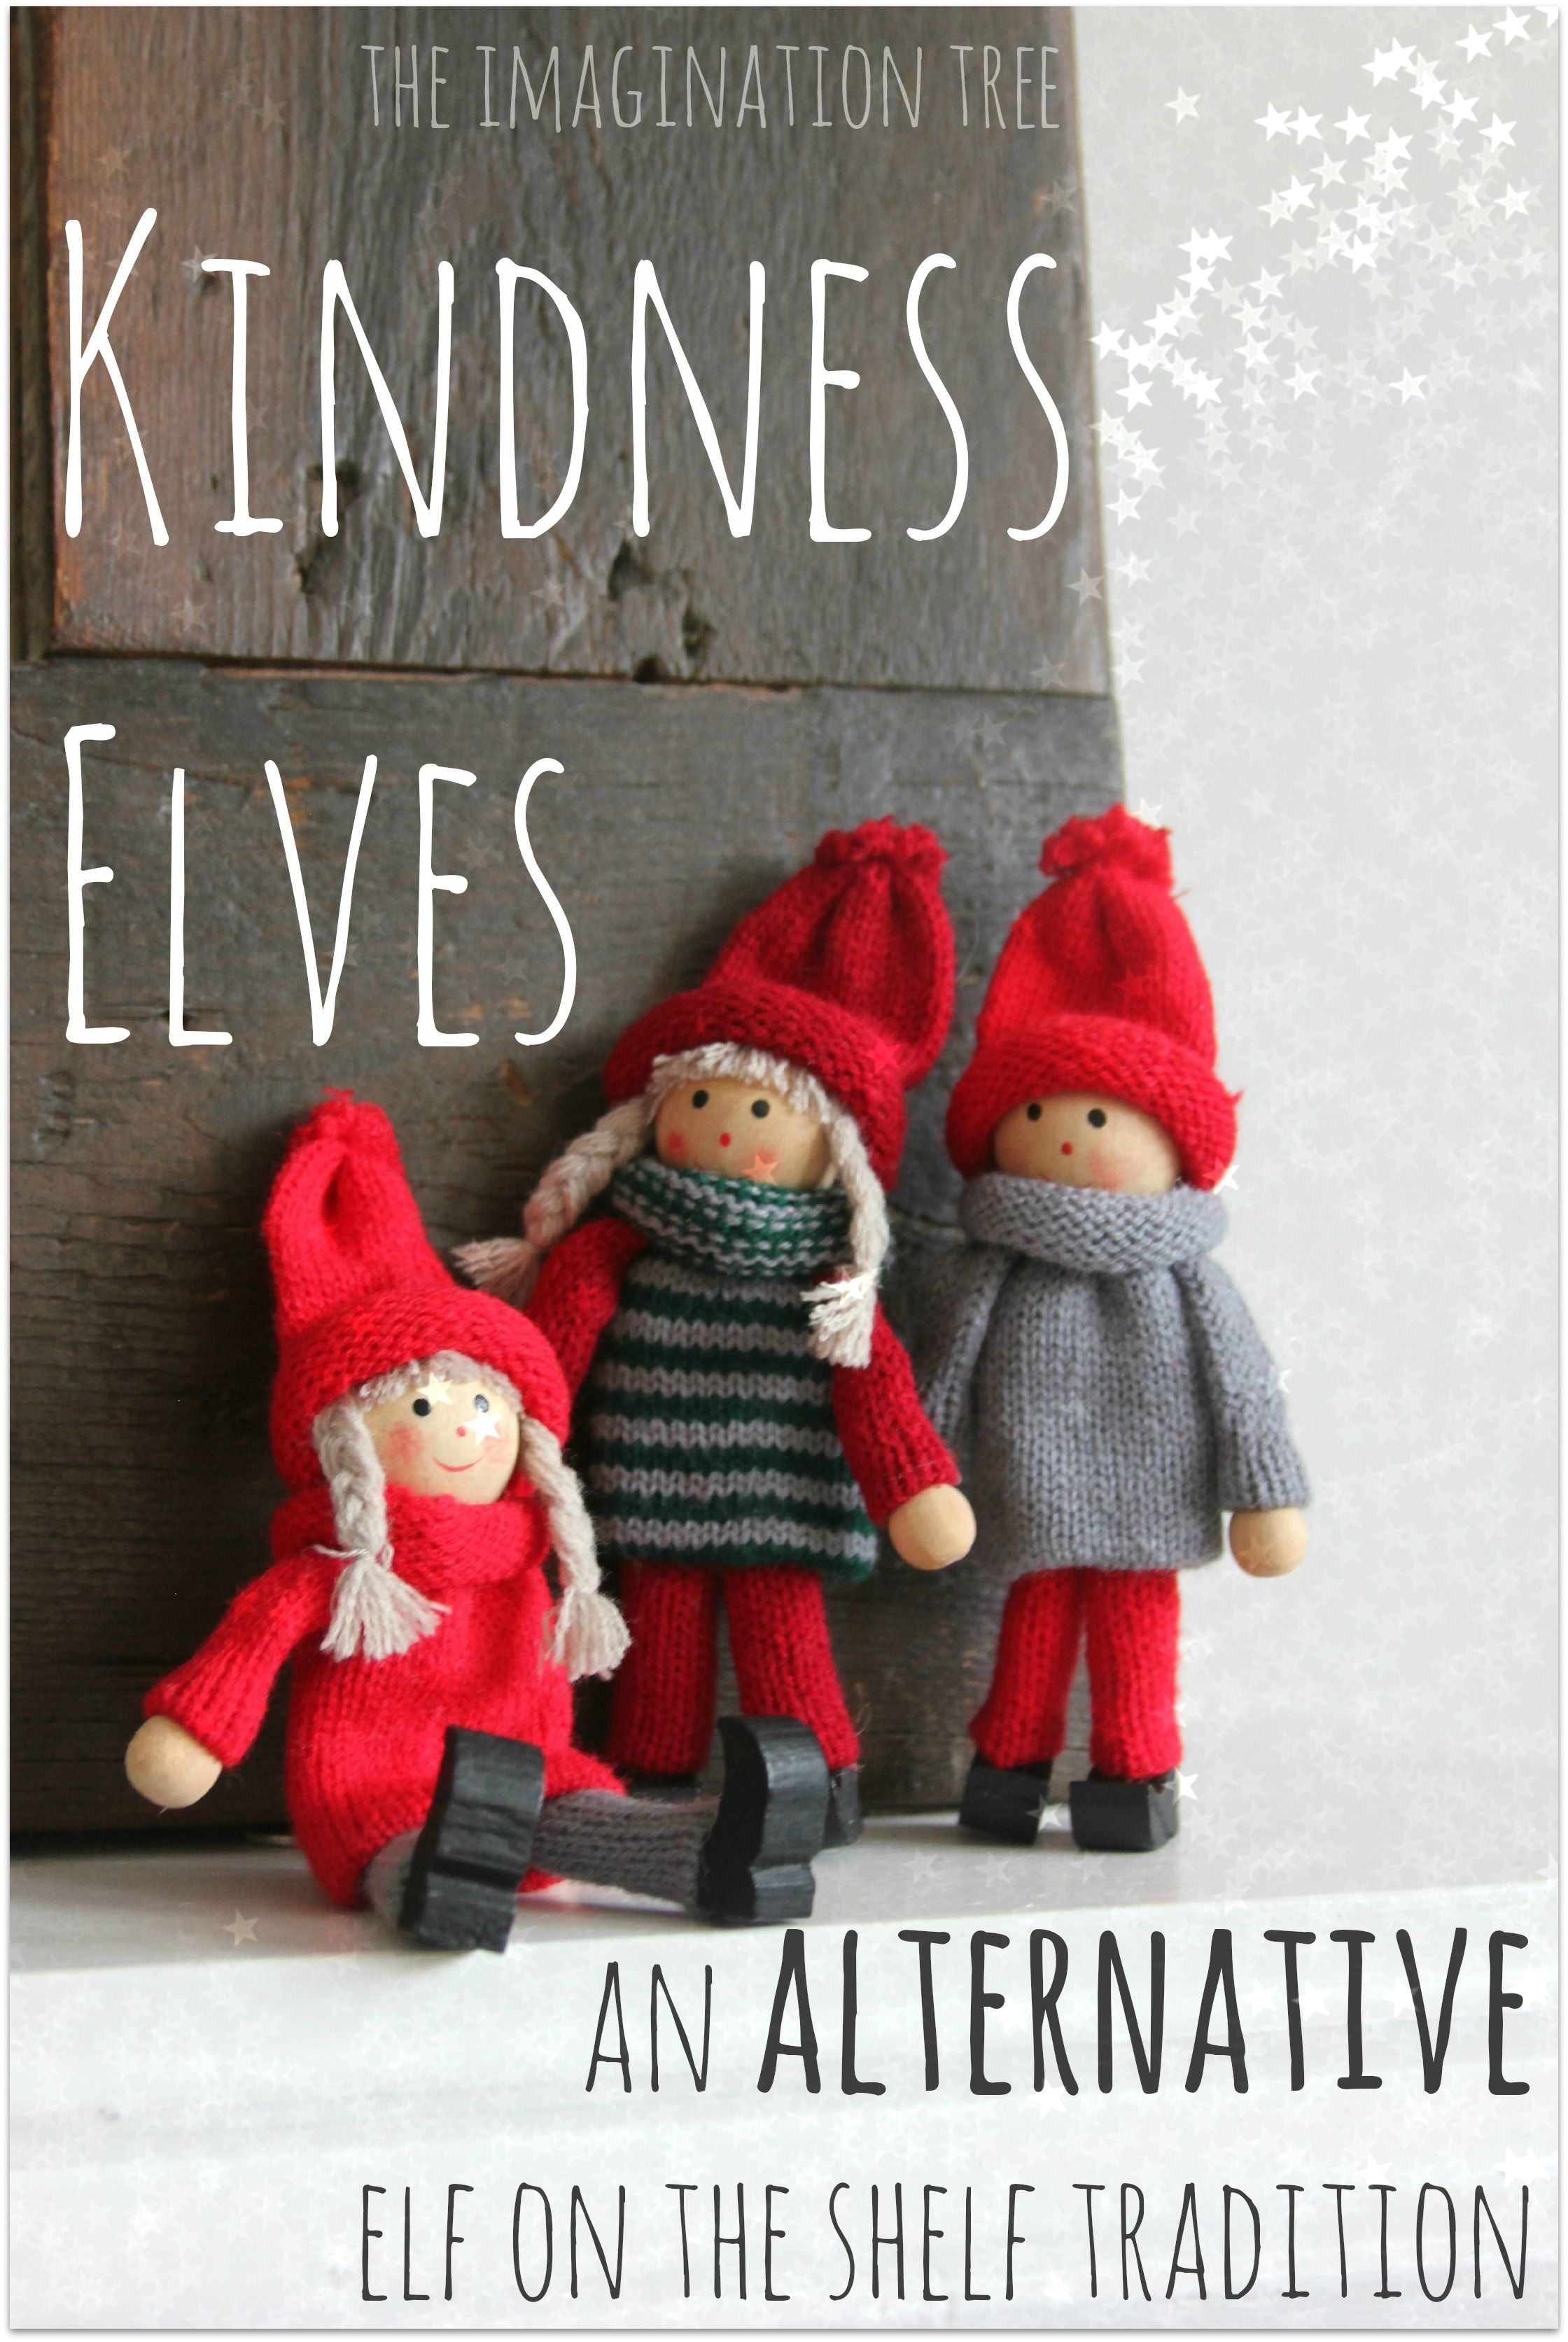 Create A New Tradition With The Kindness Elves, An Alternative